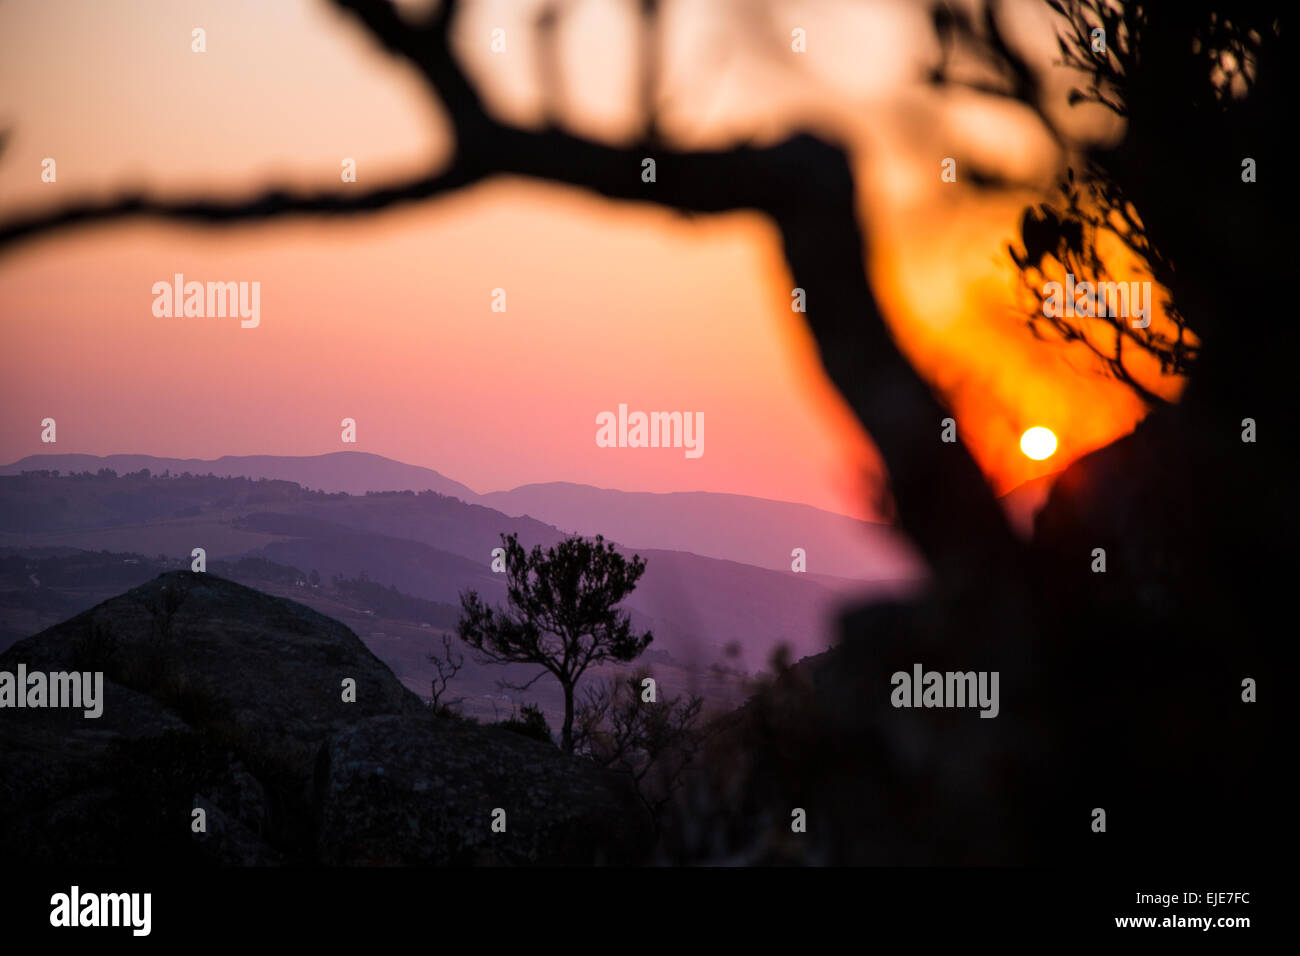 A sunset as seen from a hill in Swaziland, Africa. - Stock Image